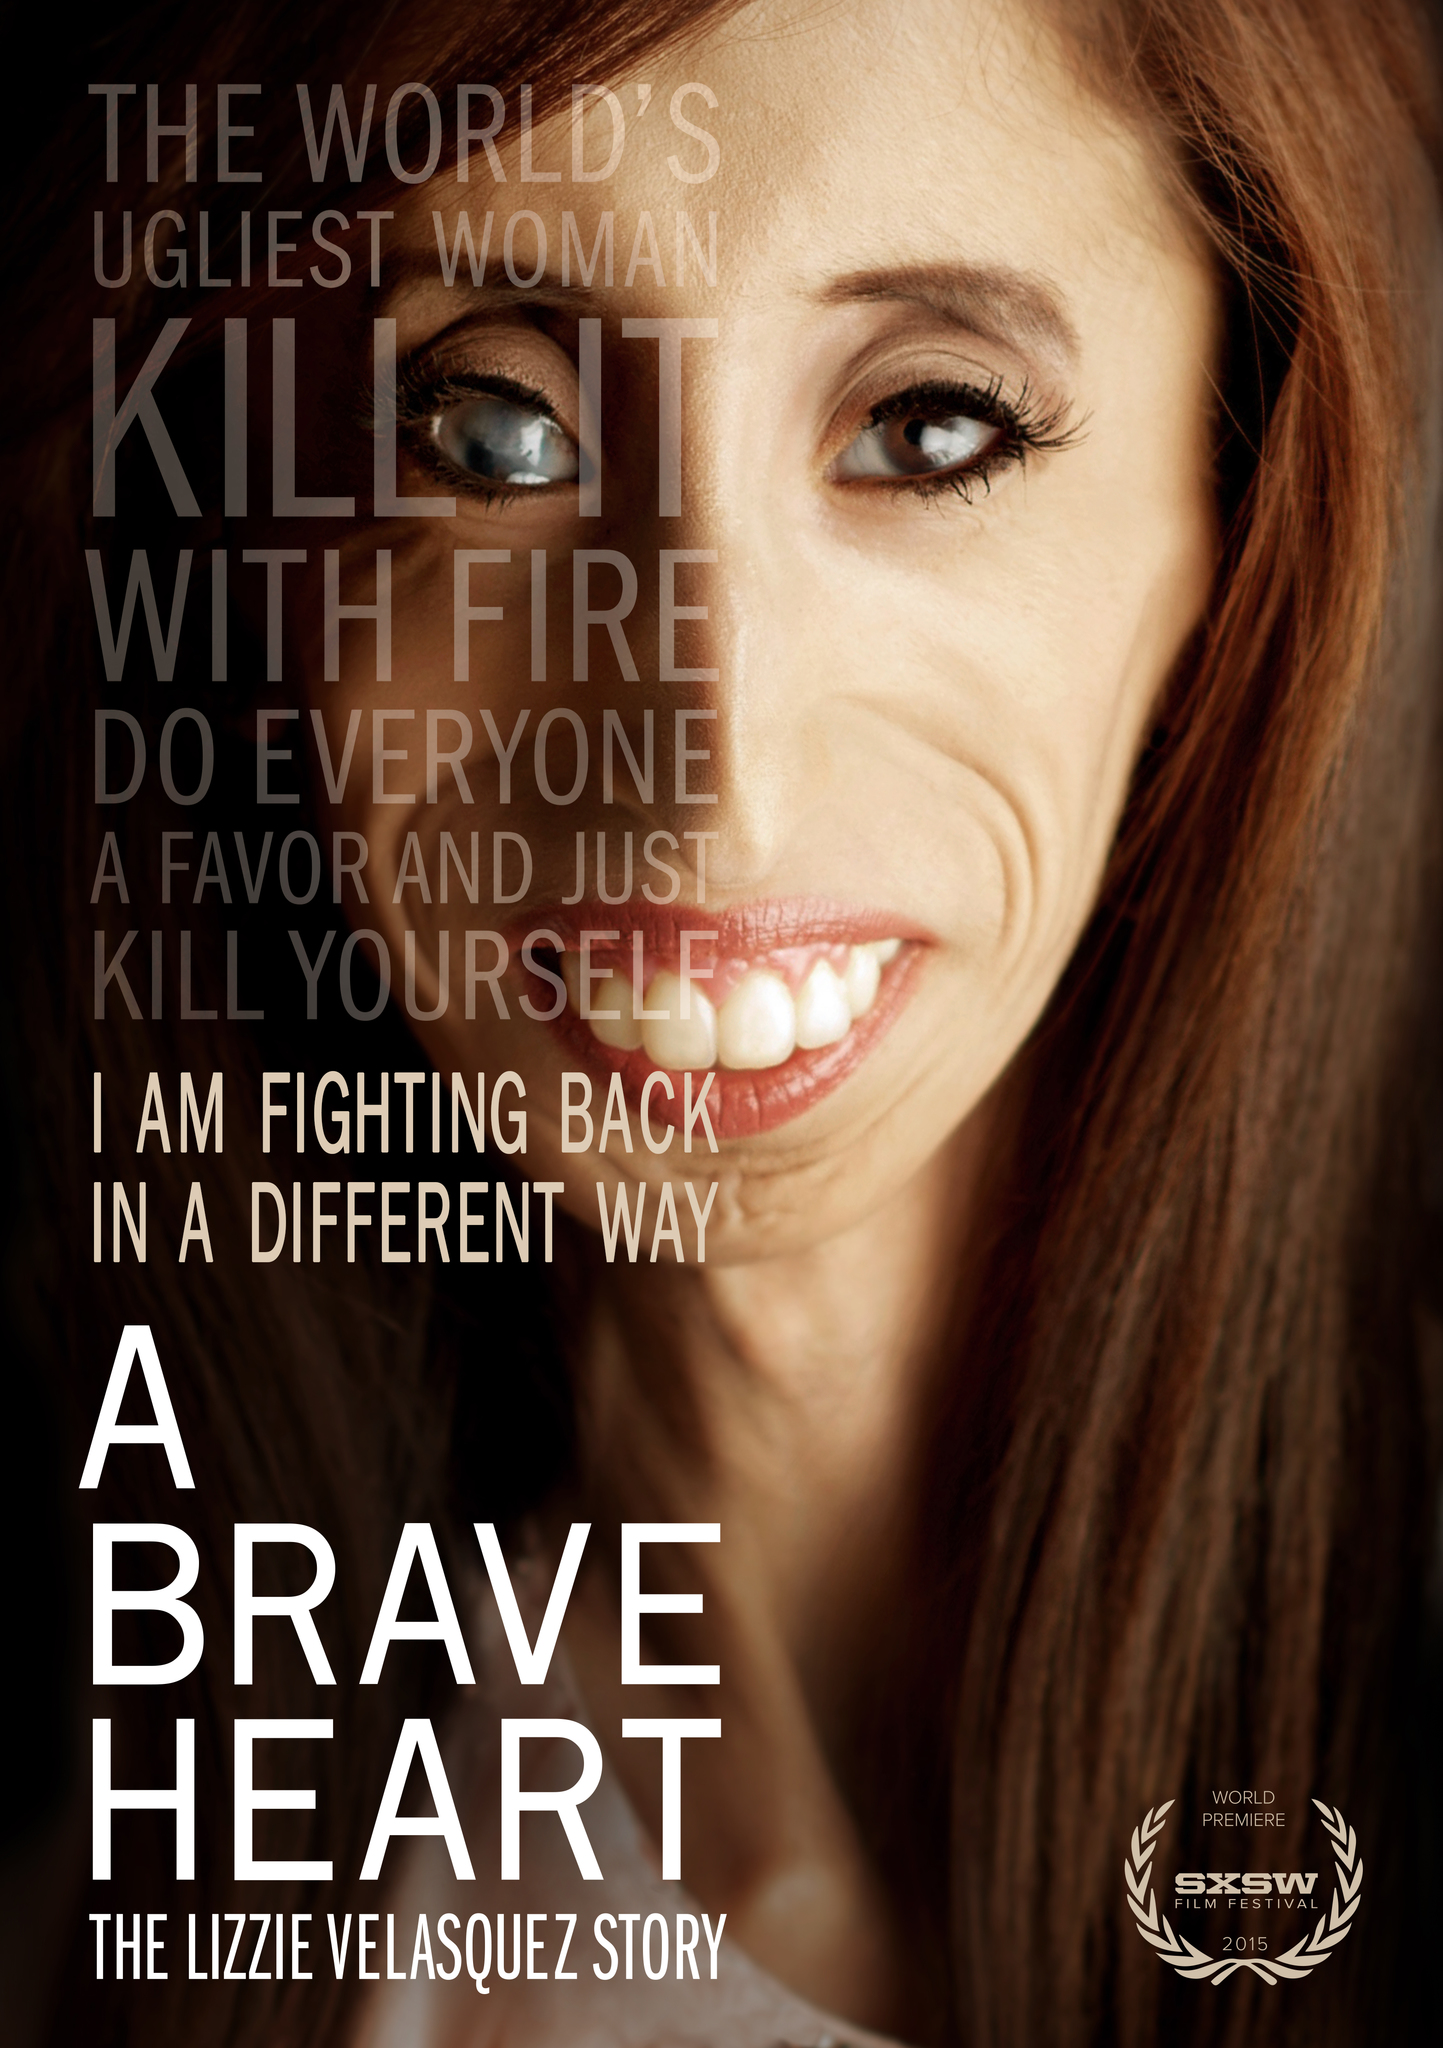 A Brave Heart: The Lizzie Velasquez Story Watch Full Movie Free Online